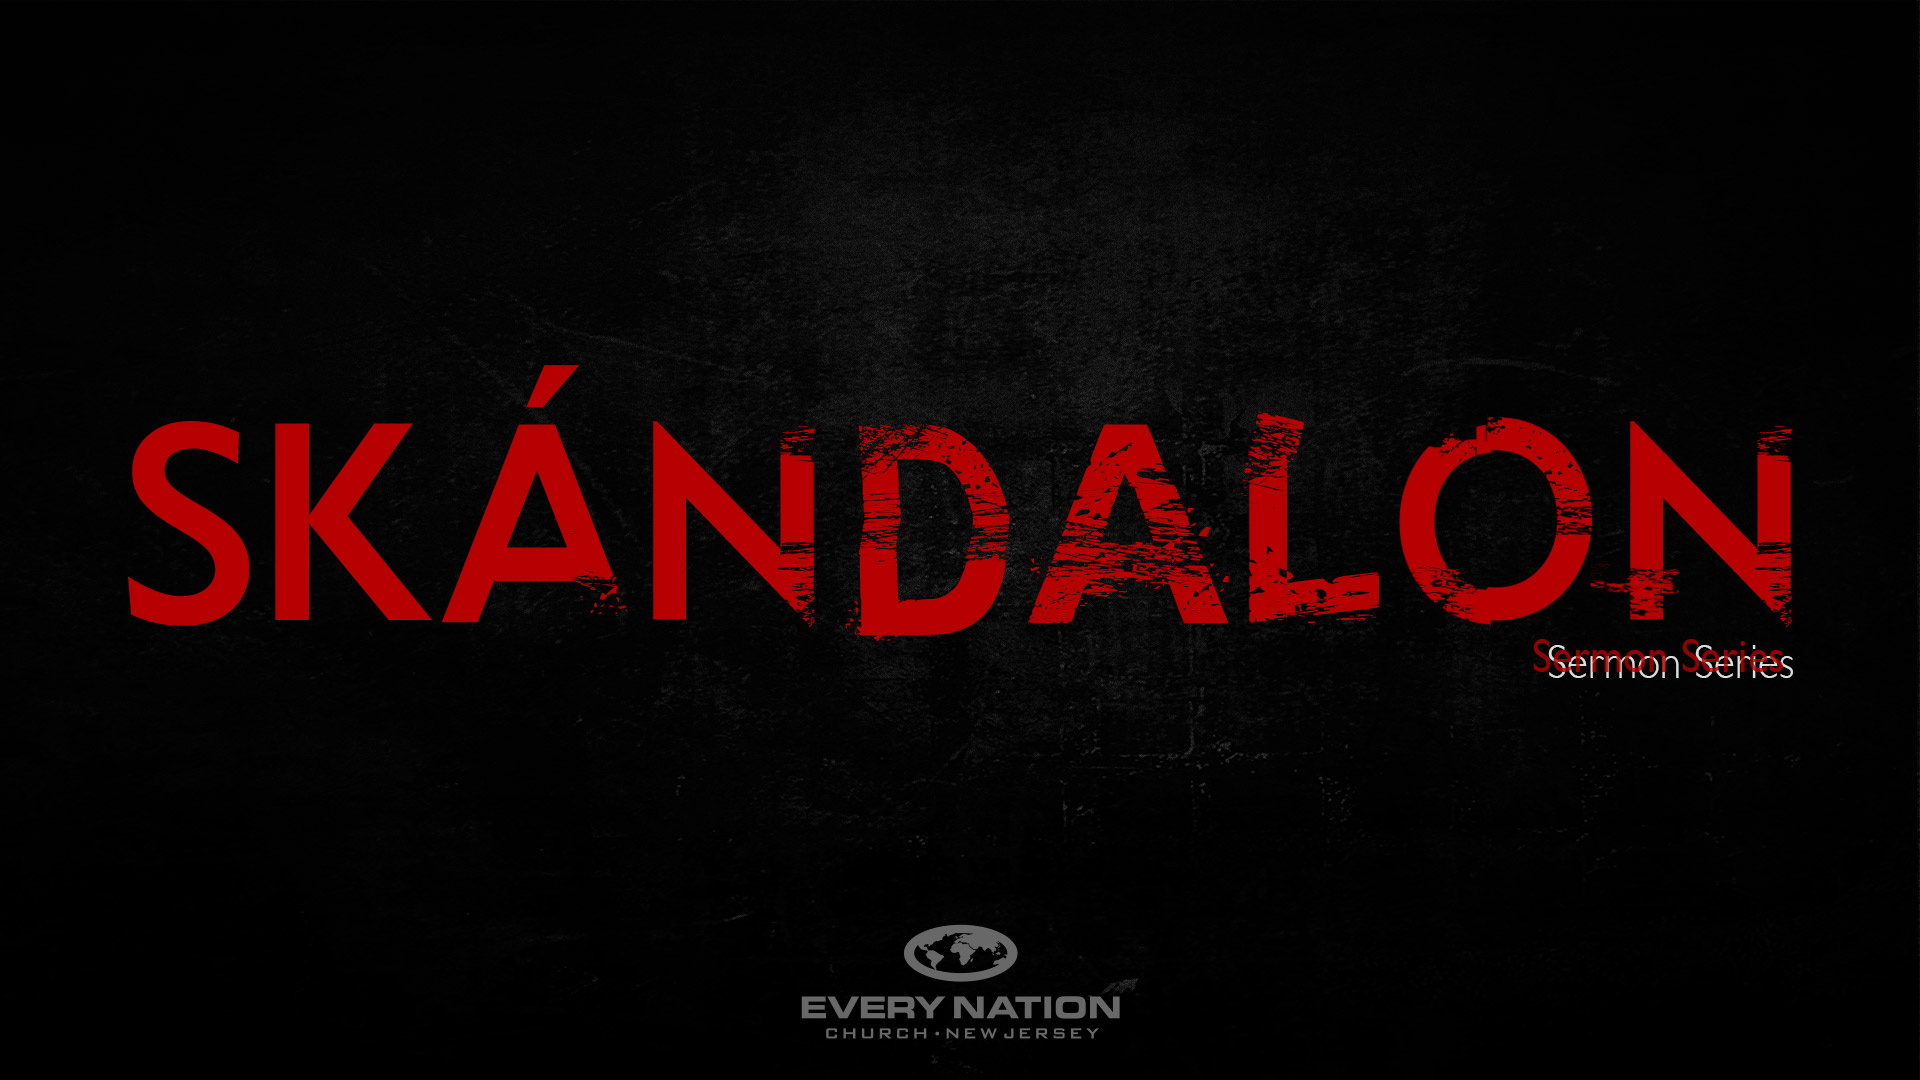 Skándalon Sermon Series